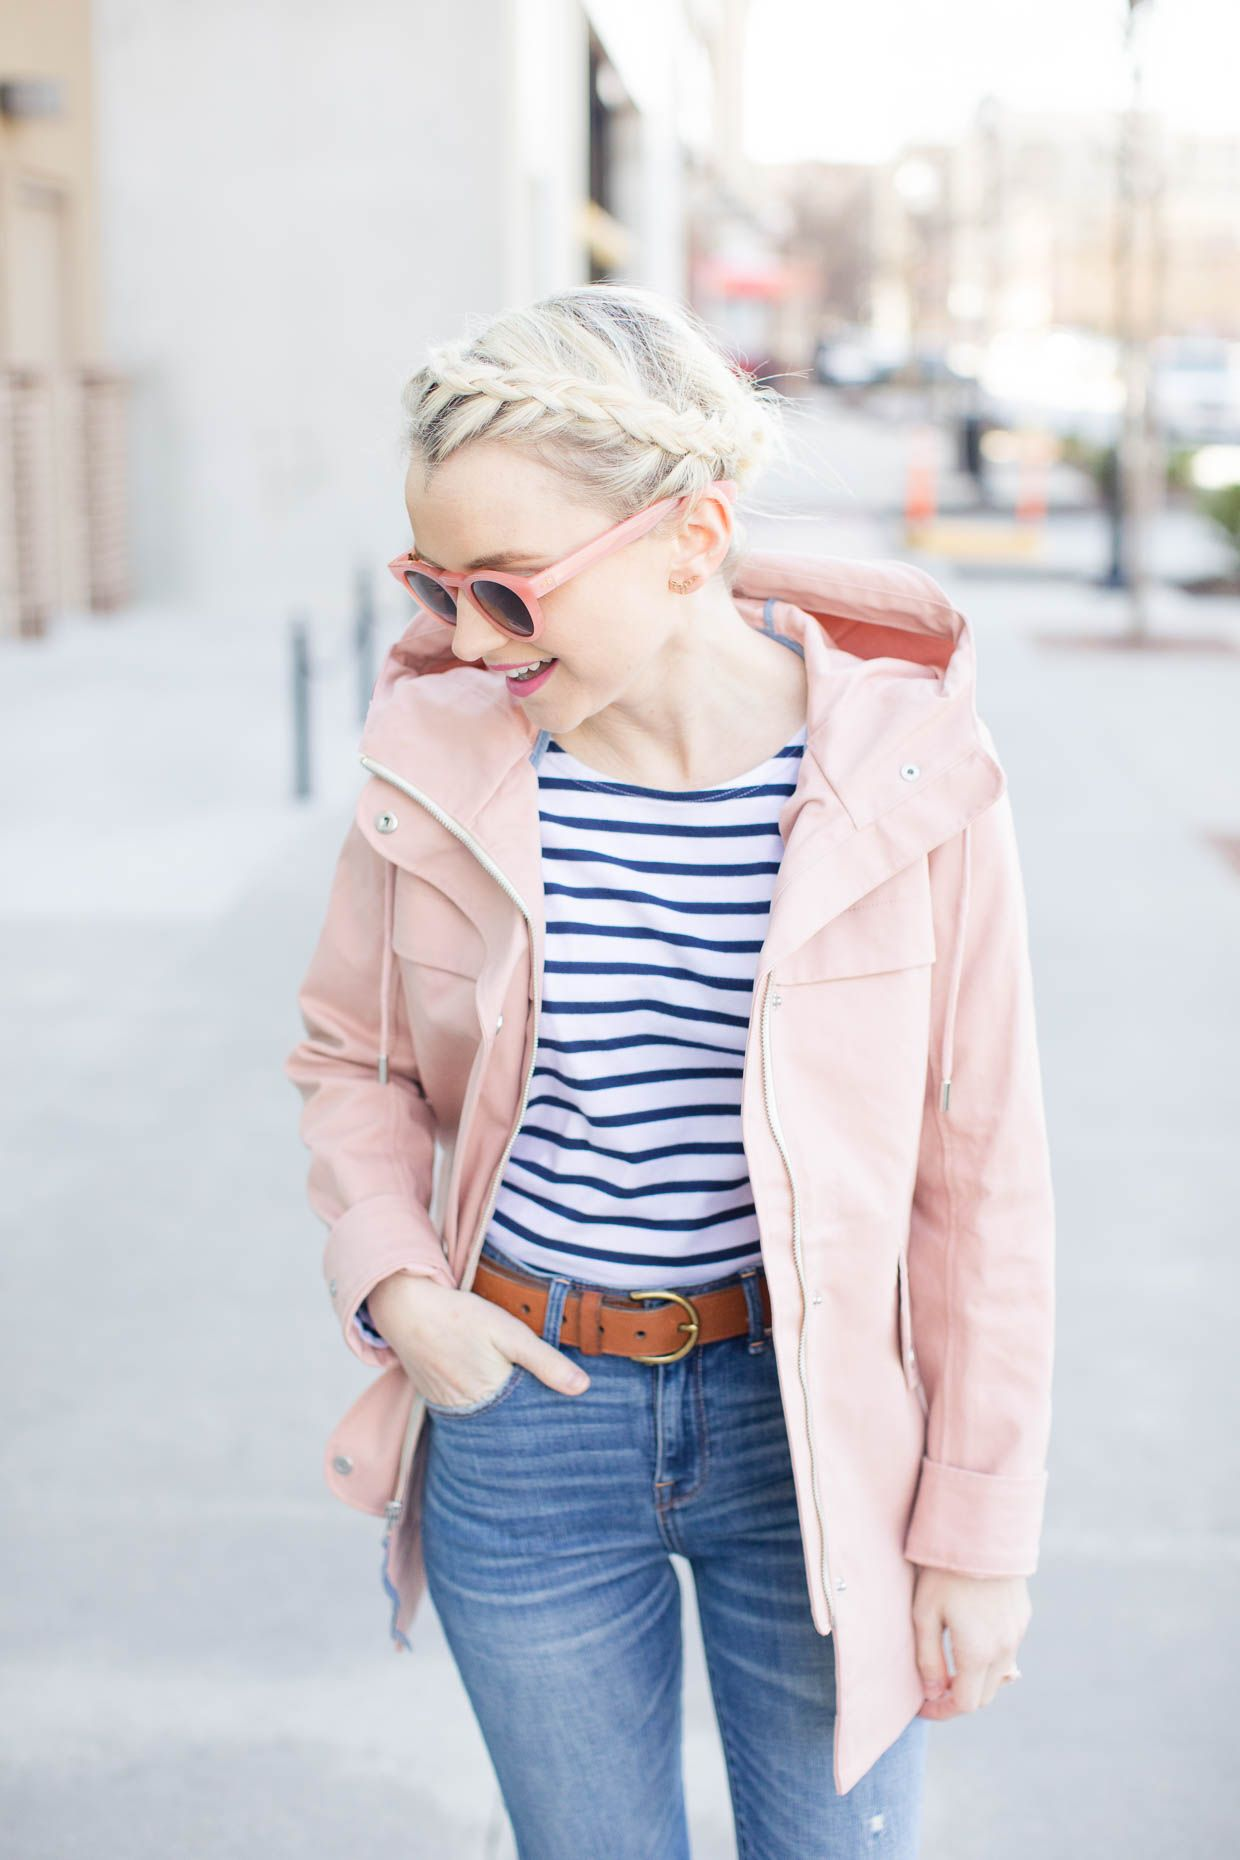 With spring right around the corner, Cathy shows how to style an  Abercrombie Pink Classic Raincoat with easy pieces from her wardrobe for  the new season!